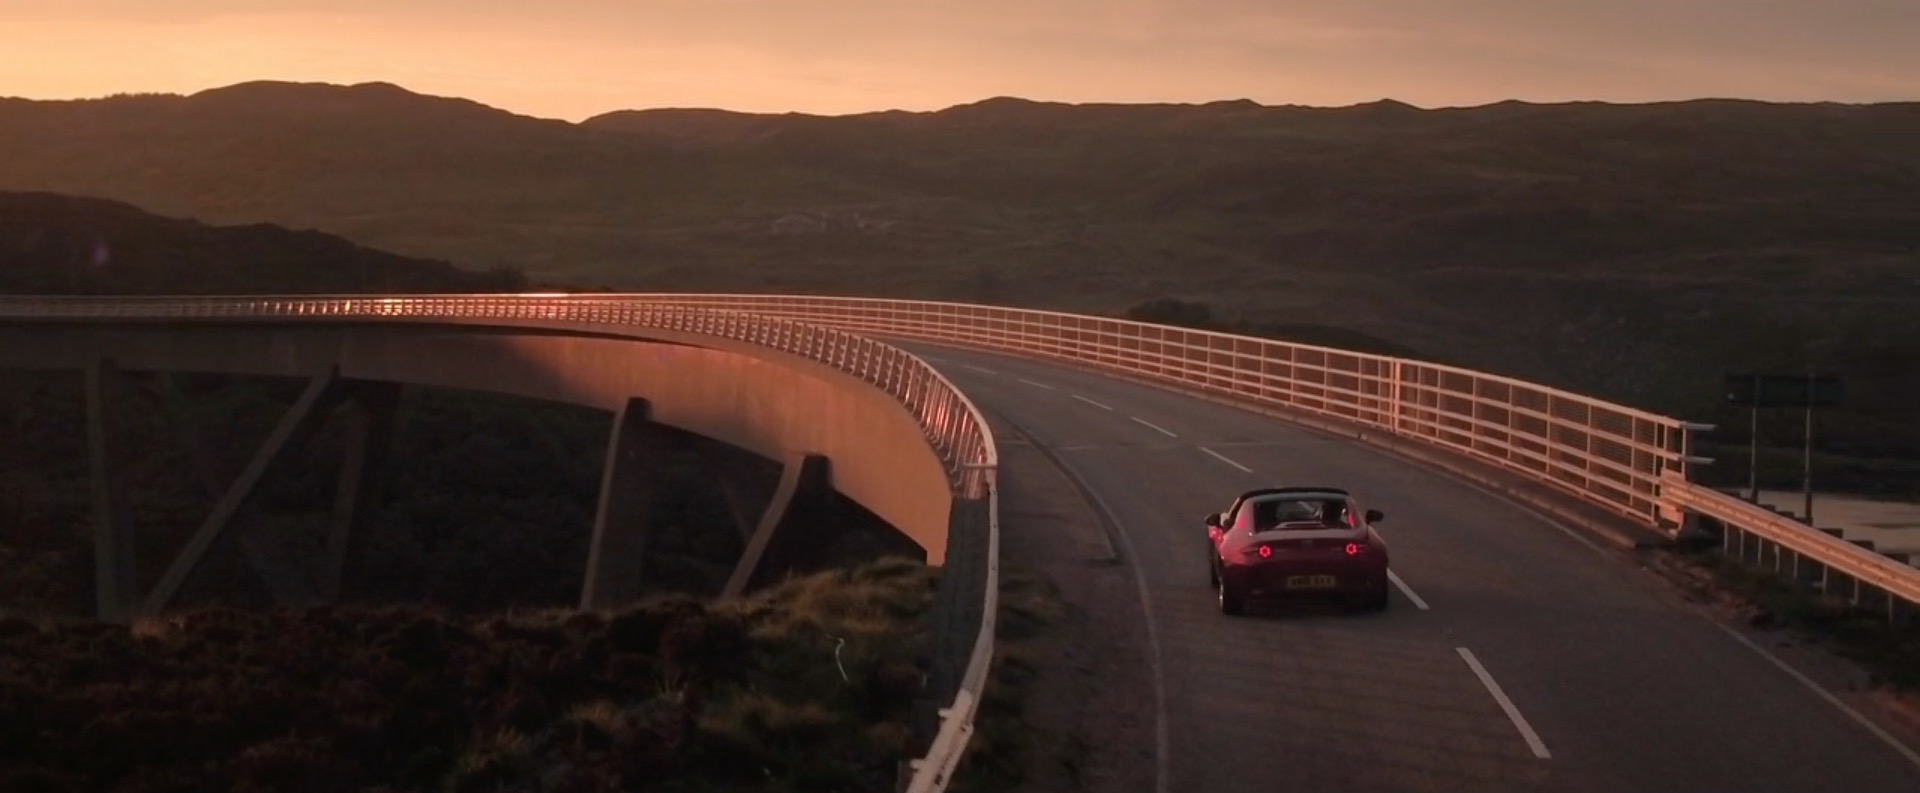 MAZDA  ''TOGETHER IS A WONDERFUL PLACE TO BE' - TOM BARBOR-MIGHT / CARNAGE FILMS FOR ANTIDOTE